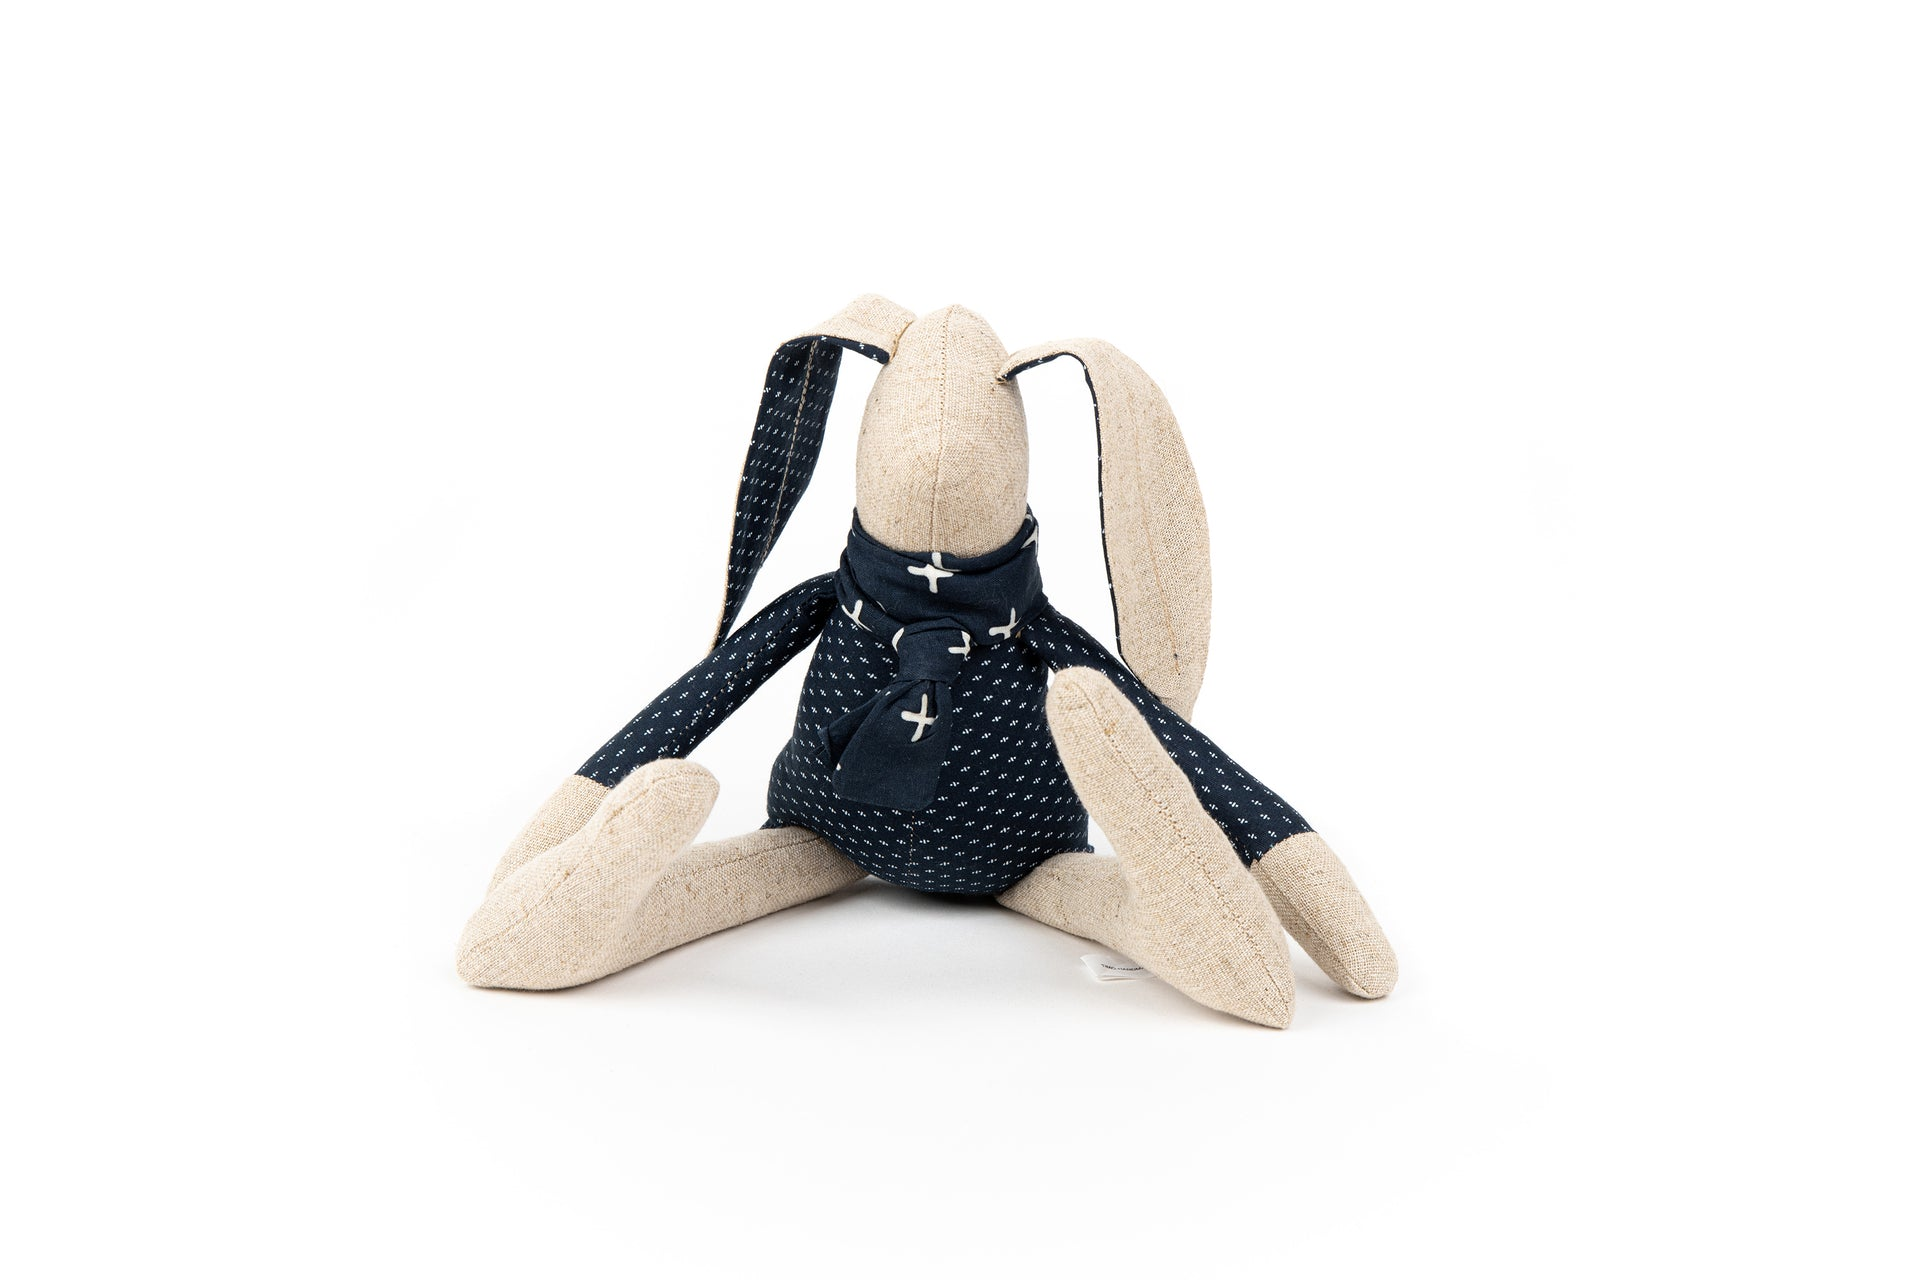 Bunny rabbit toy Linen rabbit Handmade doll Stuffed animal Rag doll Baby shower gift Gender neutral toy Navy blue nursery